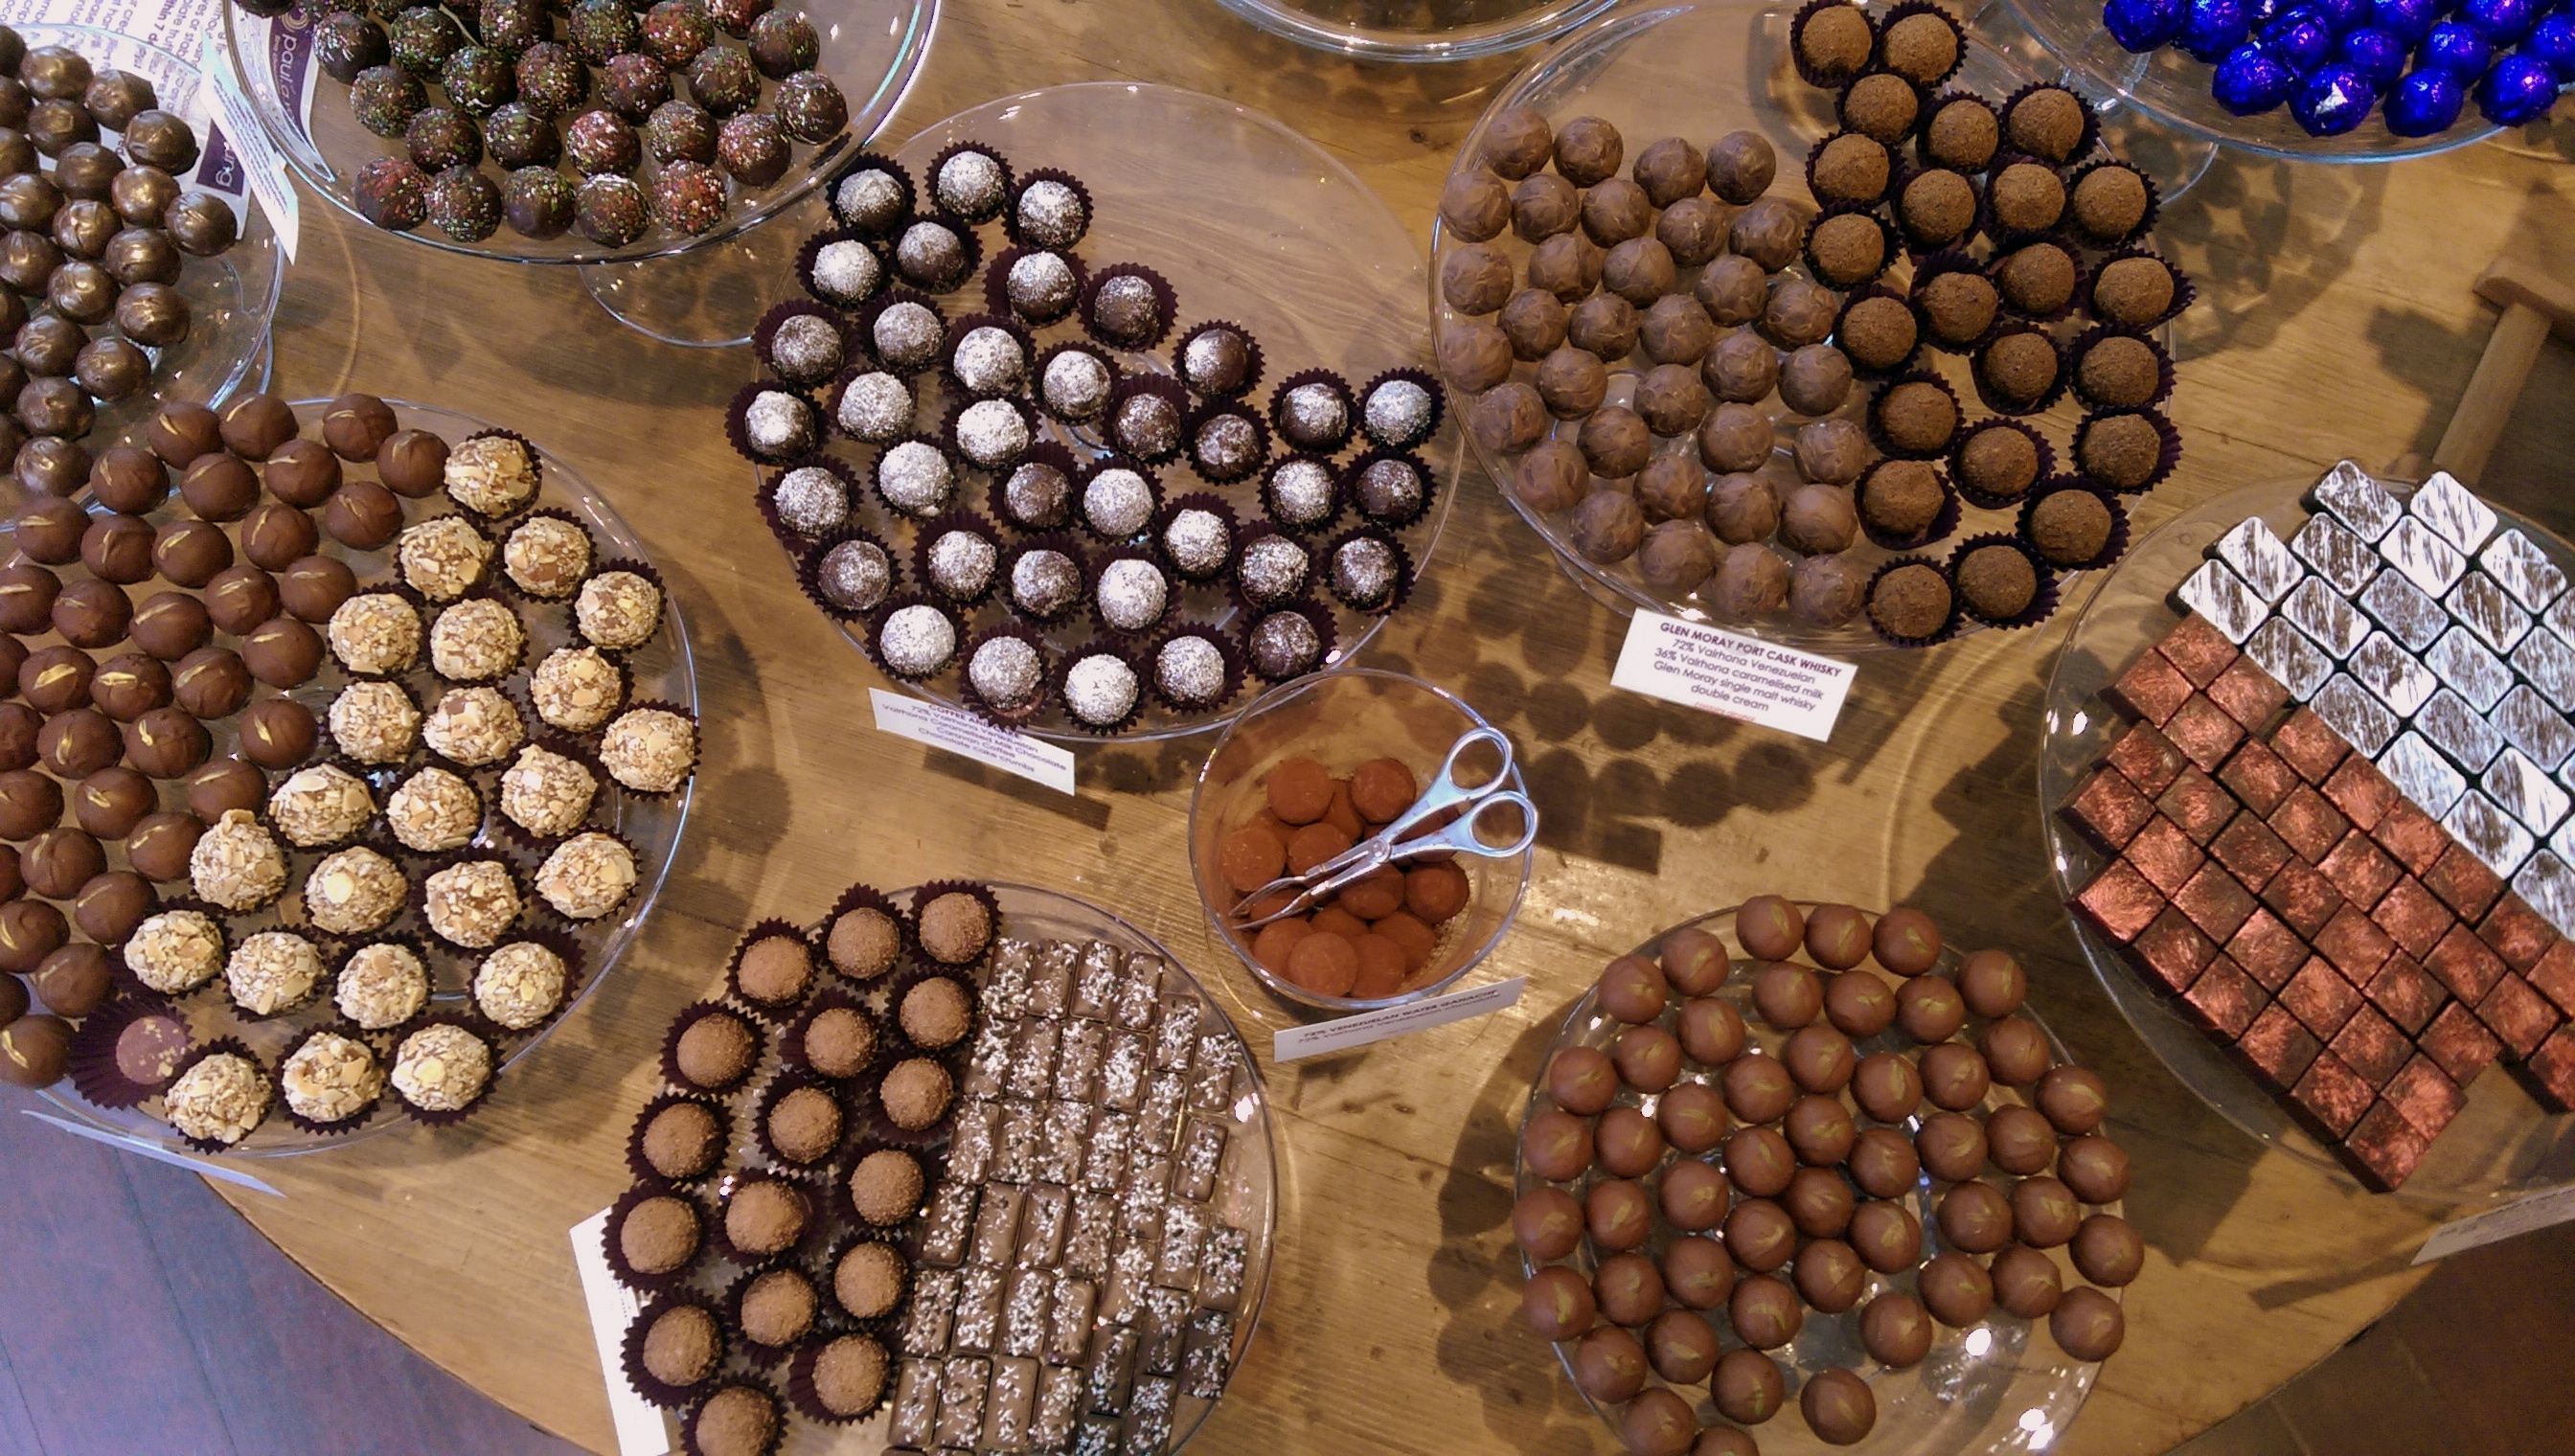 A table full of chocolates